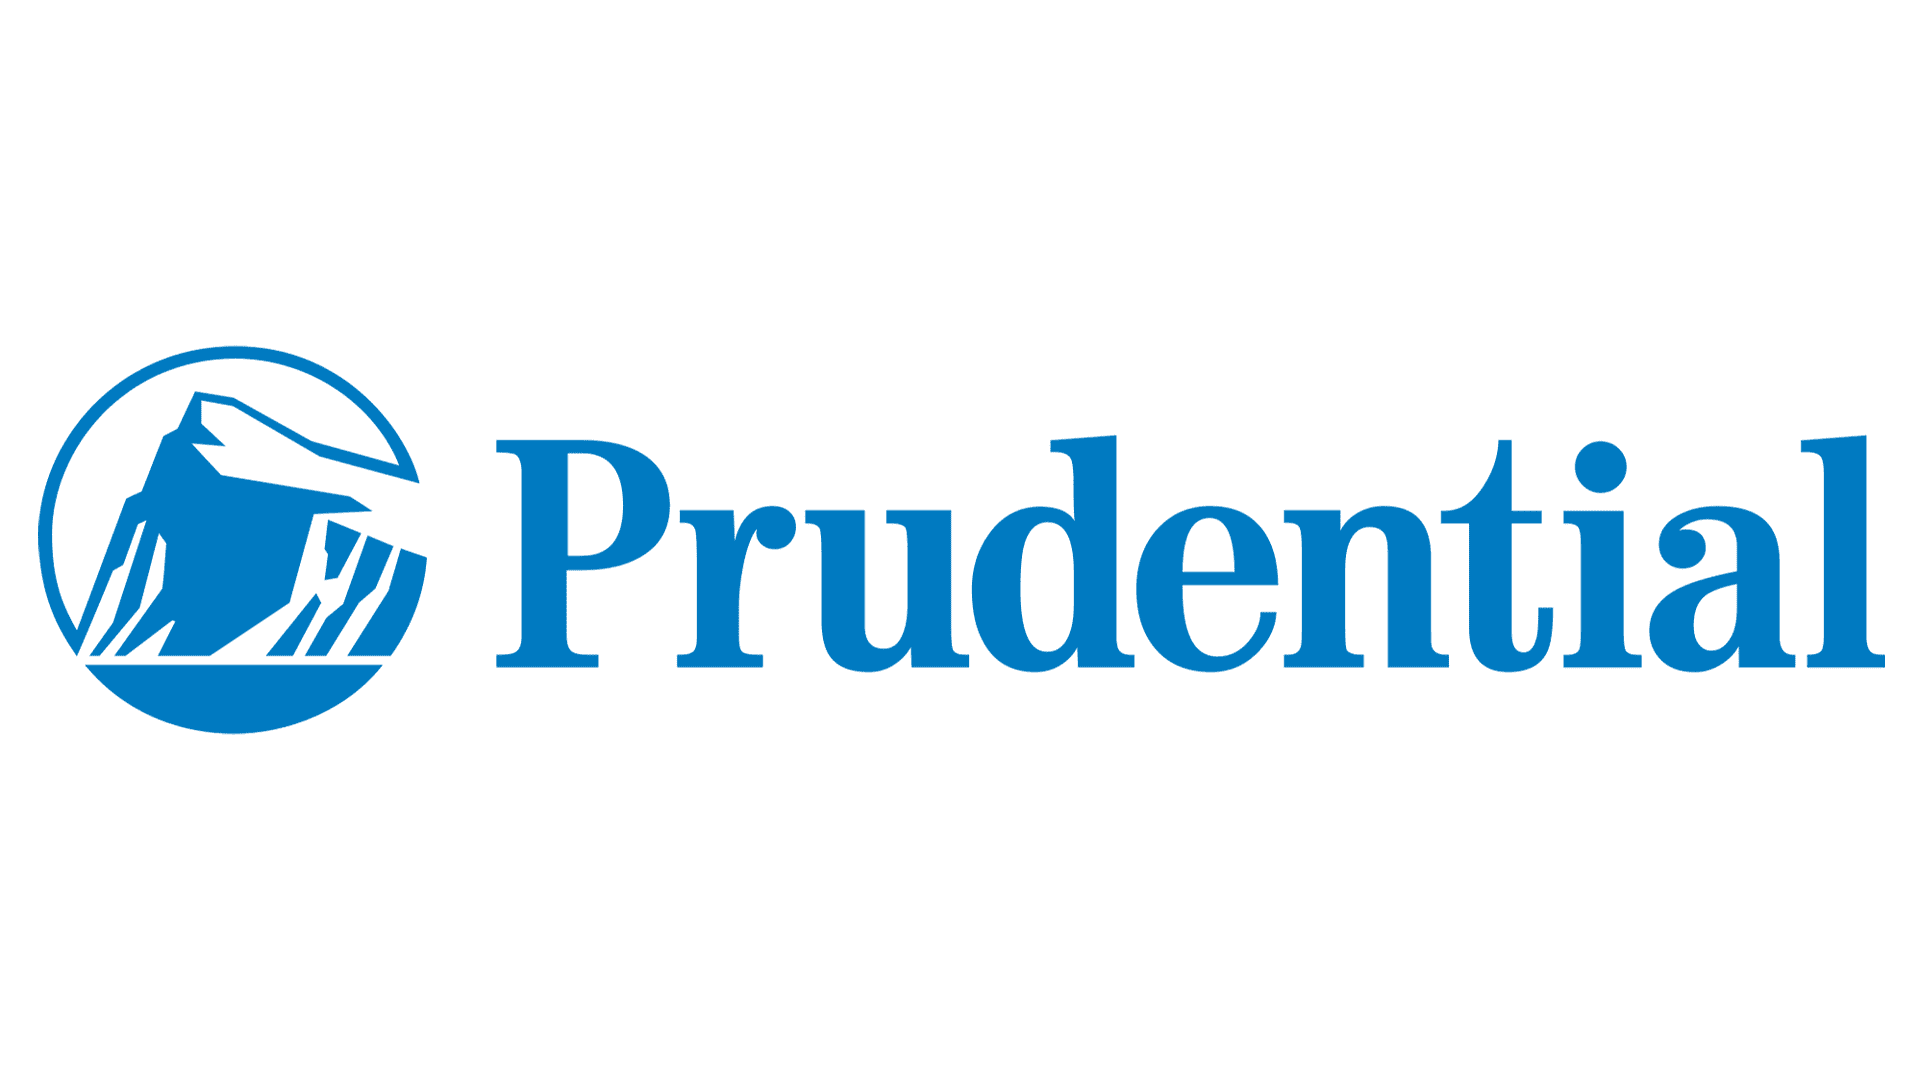 Prudential Financial Compare Life Insurance Term Life Insurance Quotes Life Insurance Comparison